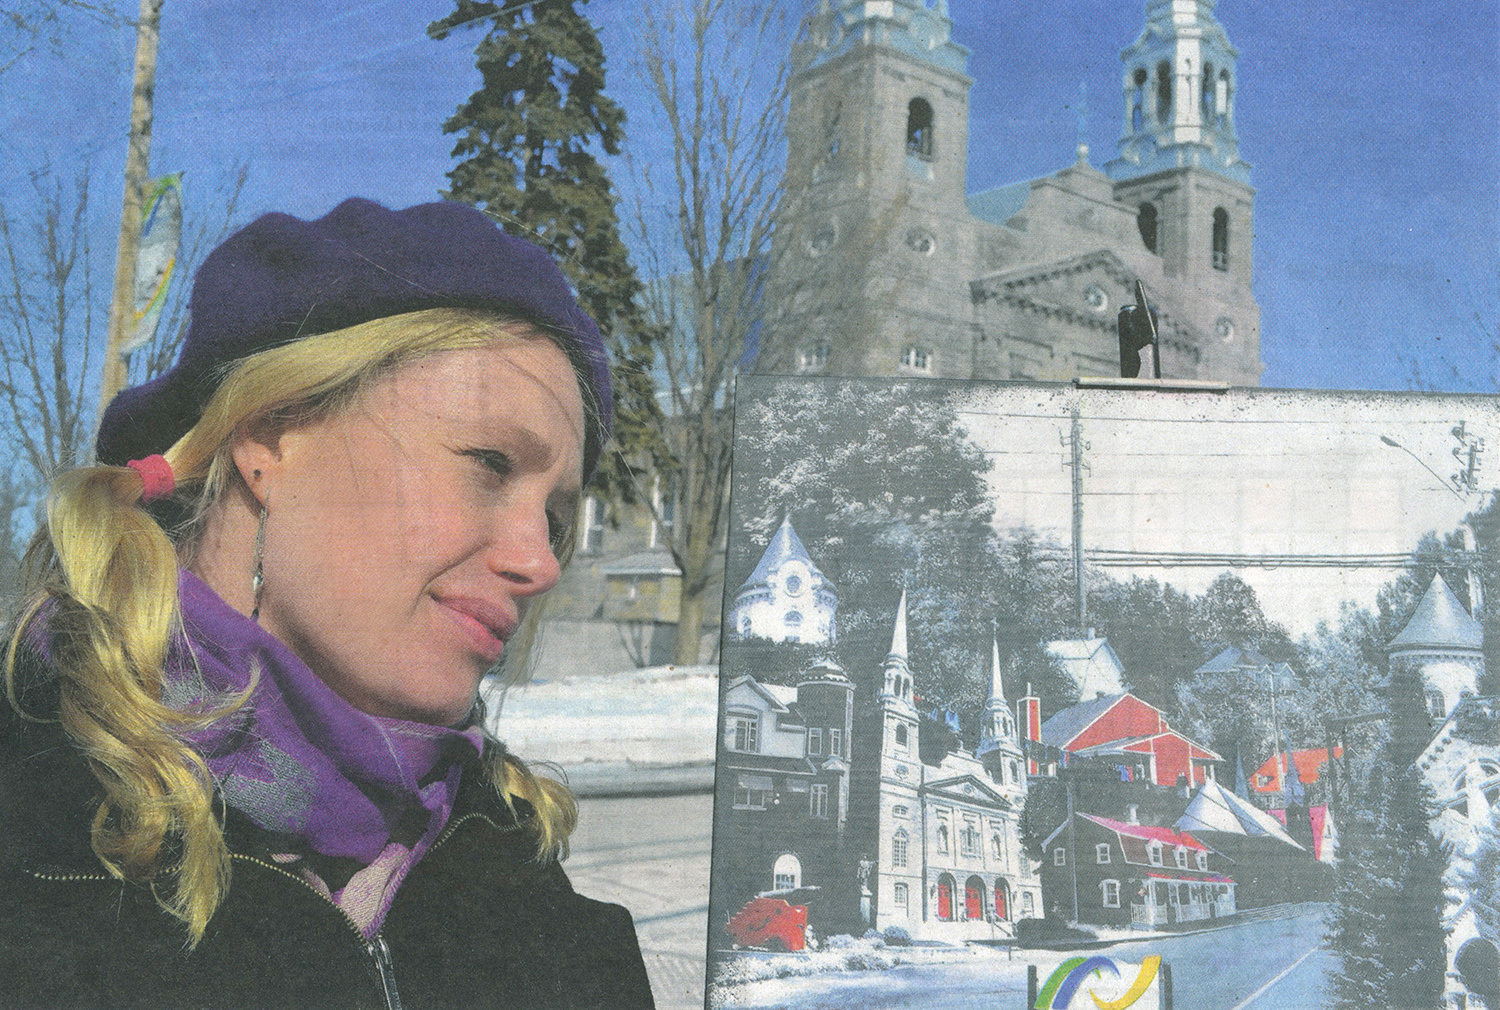 Dutch-born artist Denise Buisman Pilger reached one of her dreams two years ago as one of her artwork was displayed in the Louvre in Paris. She recently completed another project in which she made composite pictures of every municipality on the island of Montreal using photography and painting. She is pictured above in front of Ste. Geneviève Church on Gouin Blvd. Photo François Lemieux